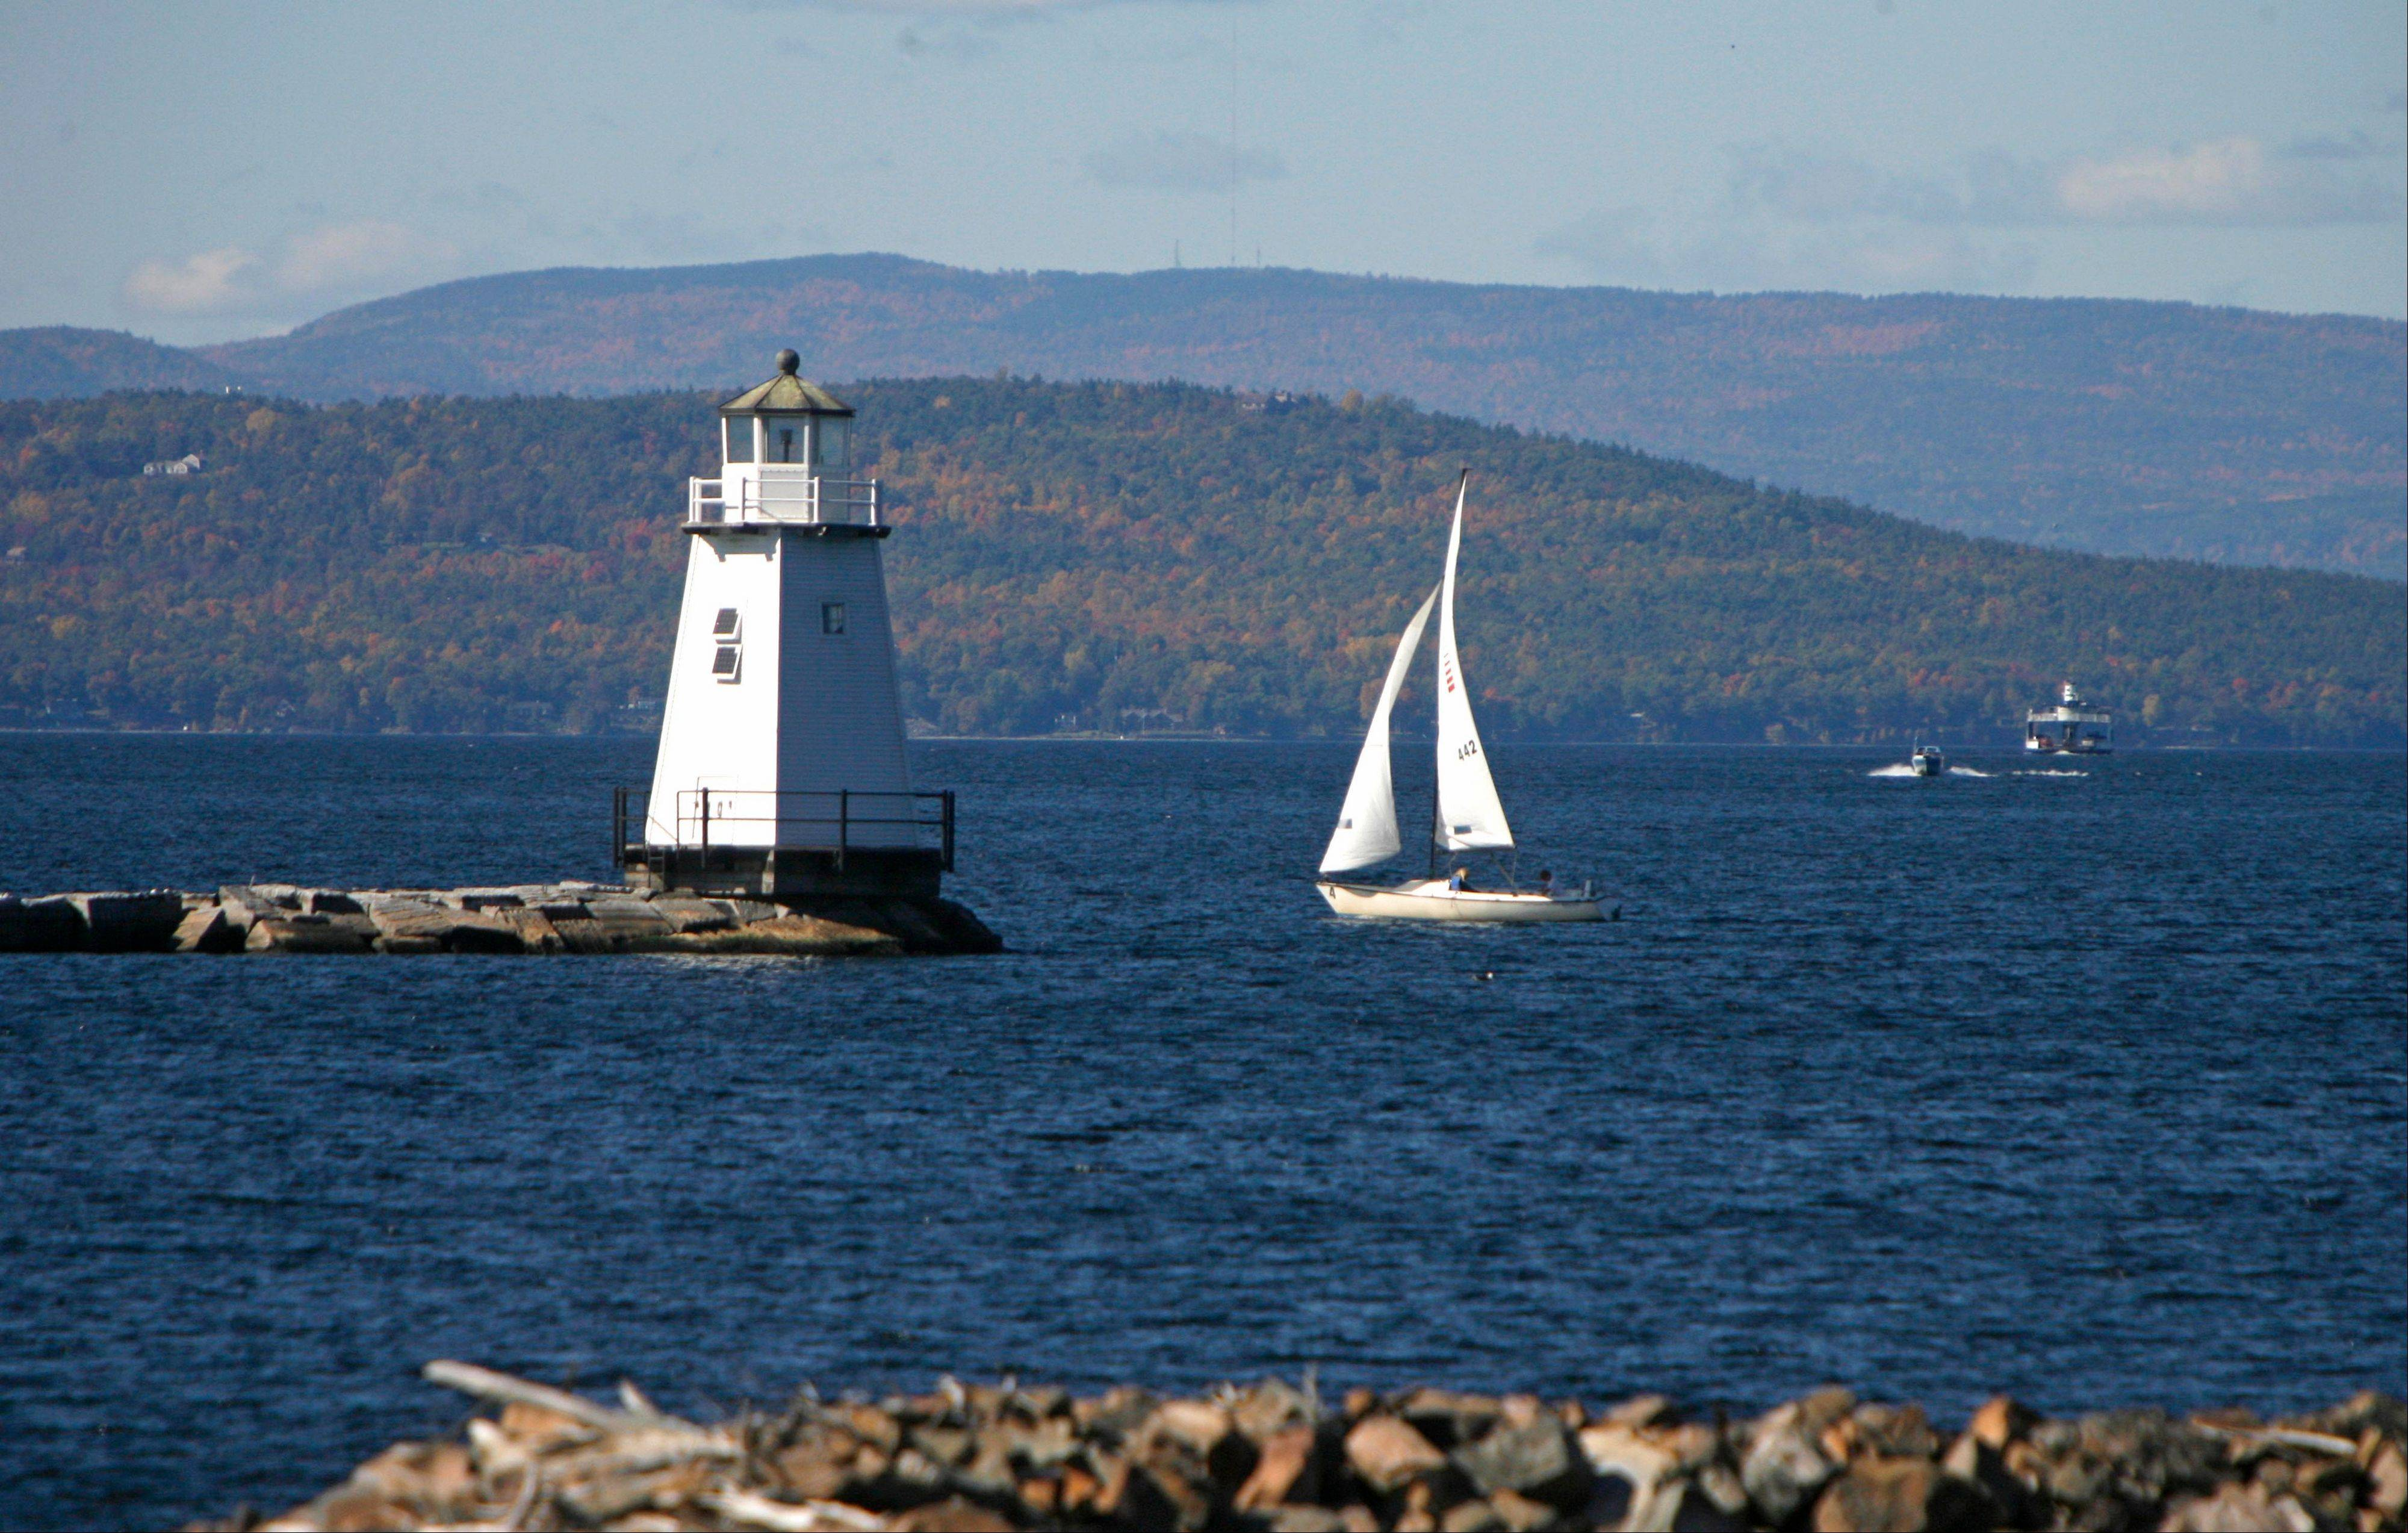 Boats travel across the waters of Lake Champlain in Burlington, Vt.